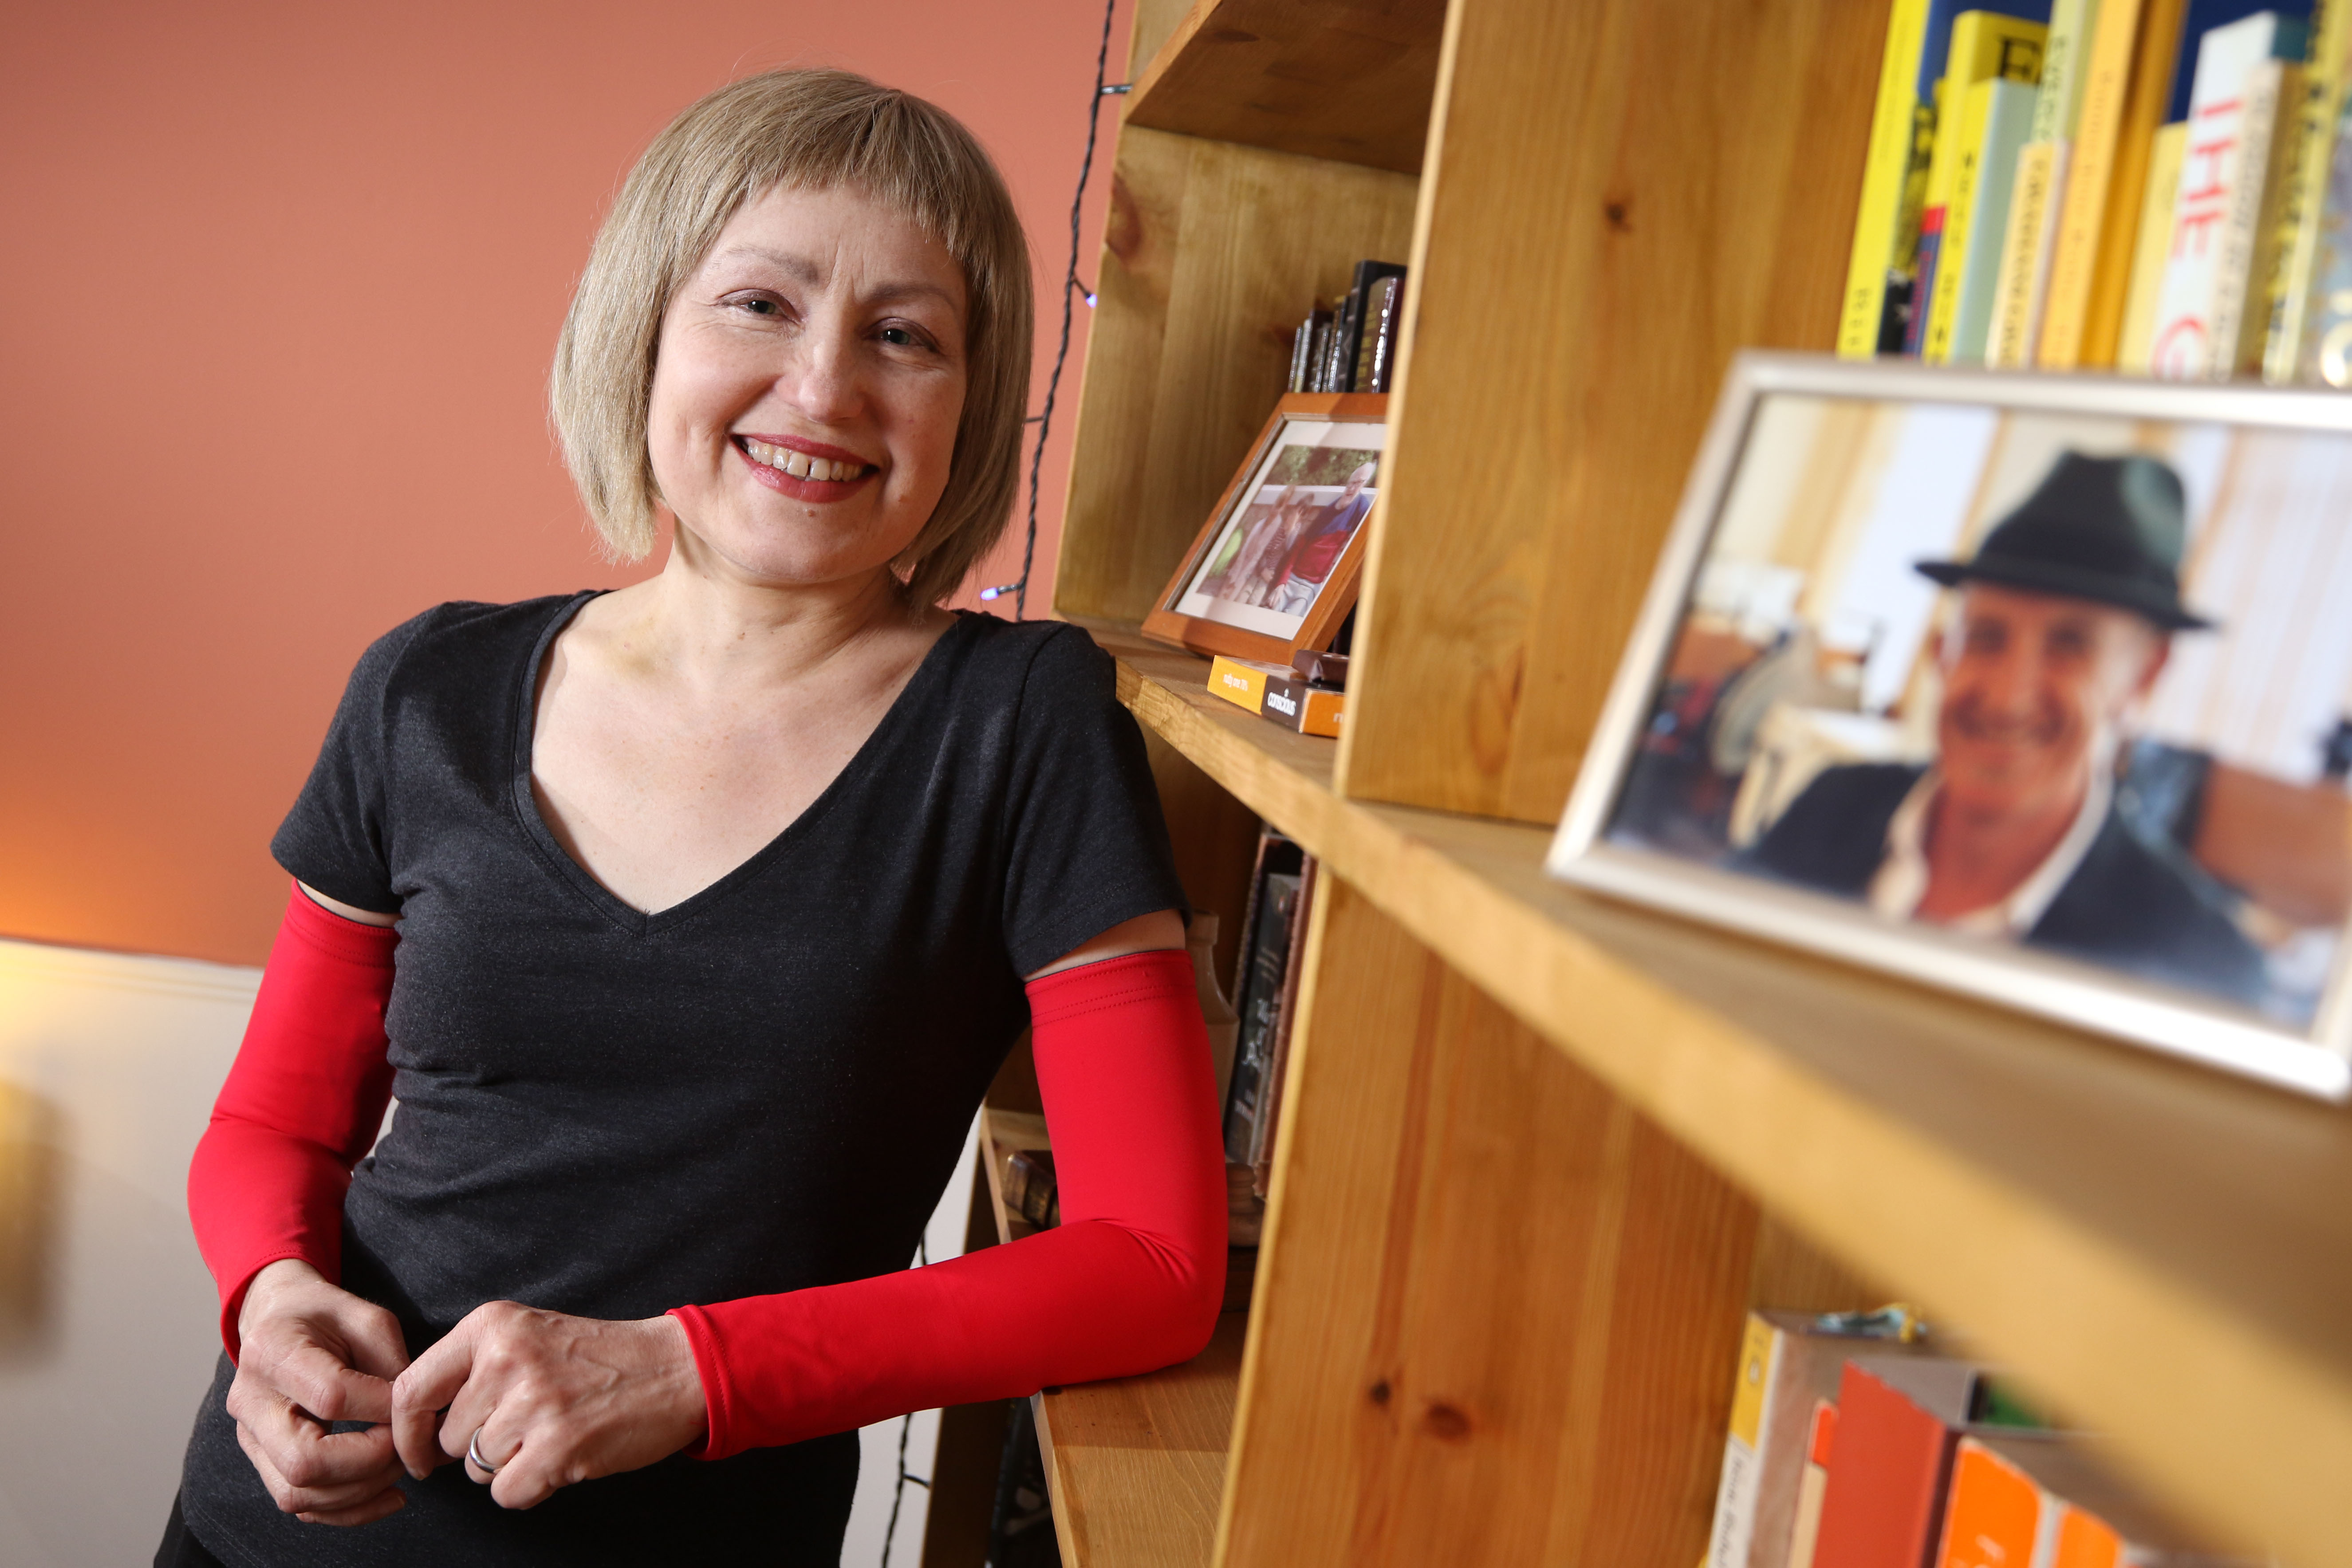 Roz Paterson, was originally trying to raise money to pay for potentially life-saving cancer treatment in America.